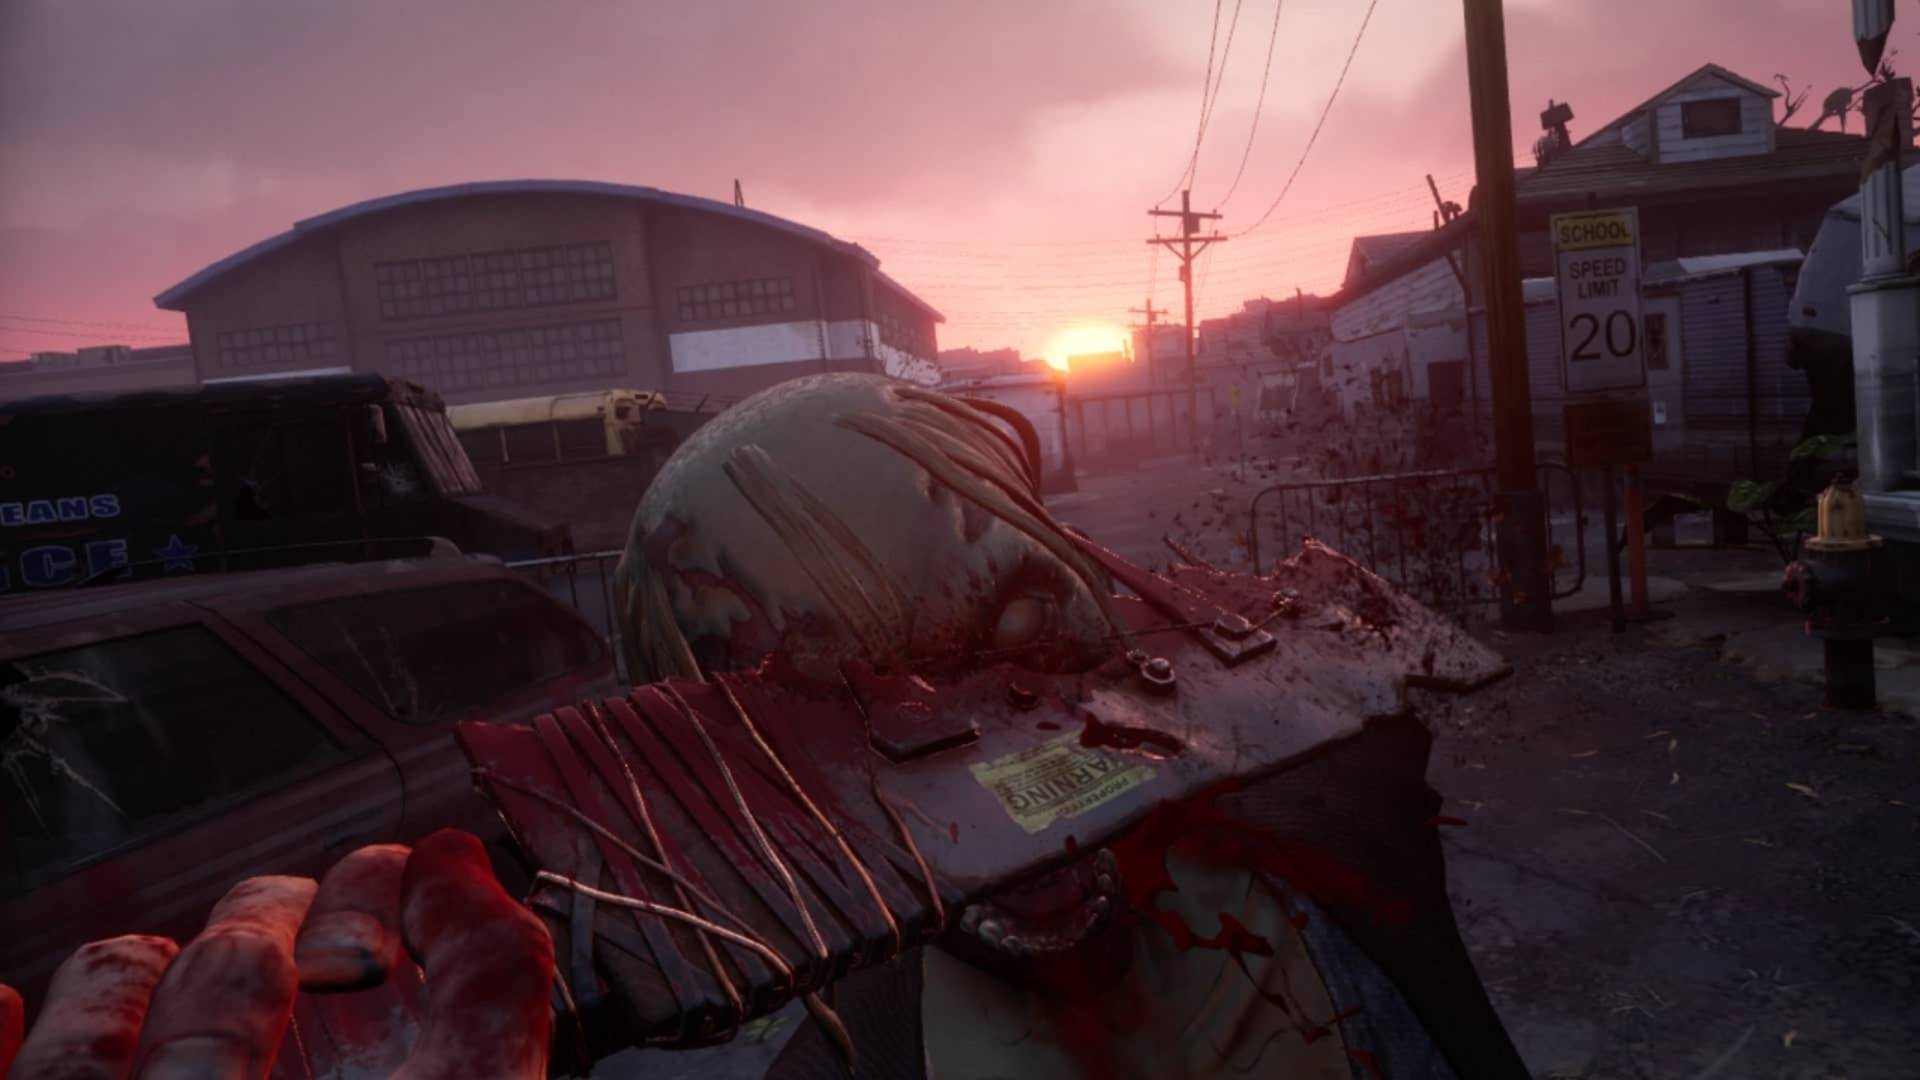 Players can craft weapons out of scavenged material in 'The Walking Dead: Saints & Sinners'. — Skydance Interactive/TNS